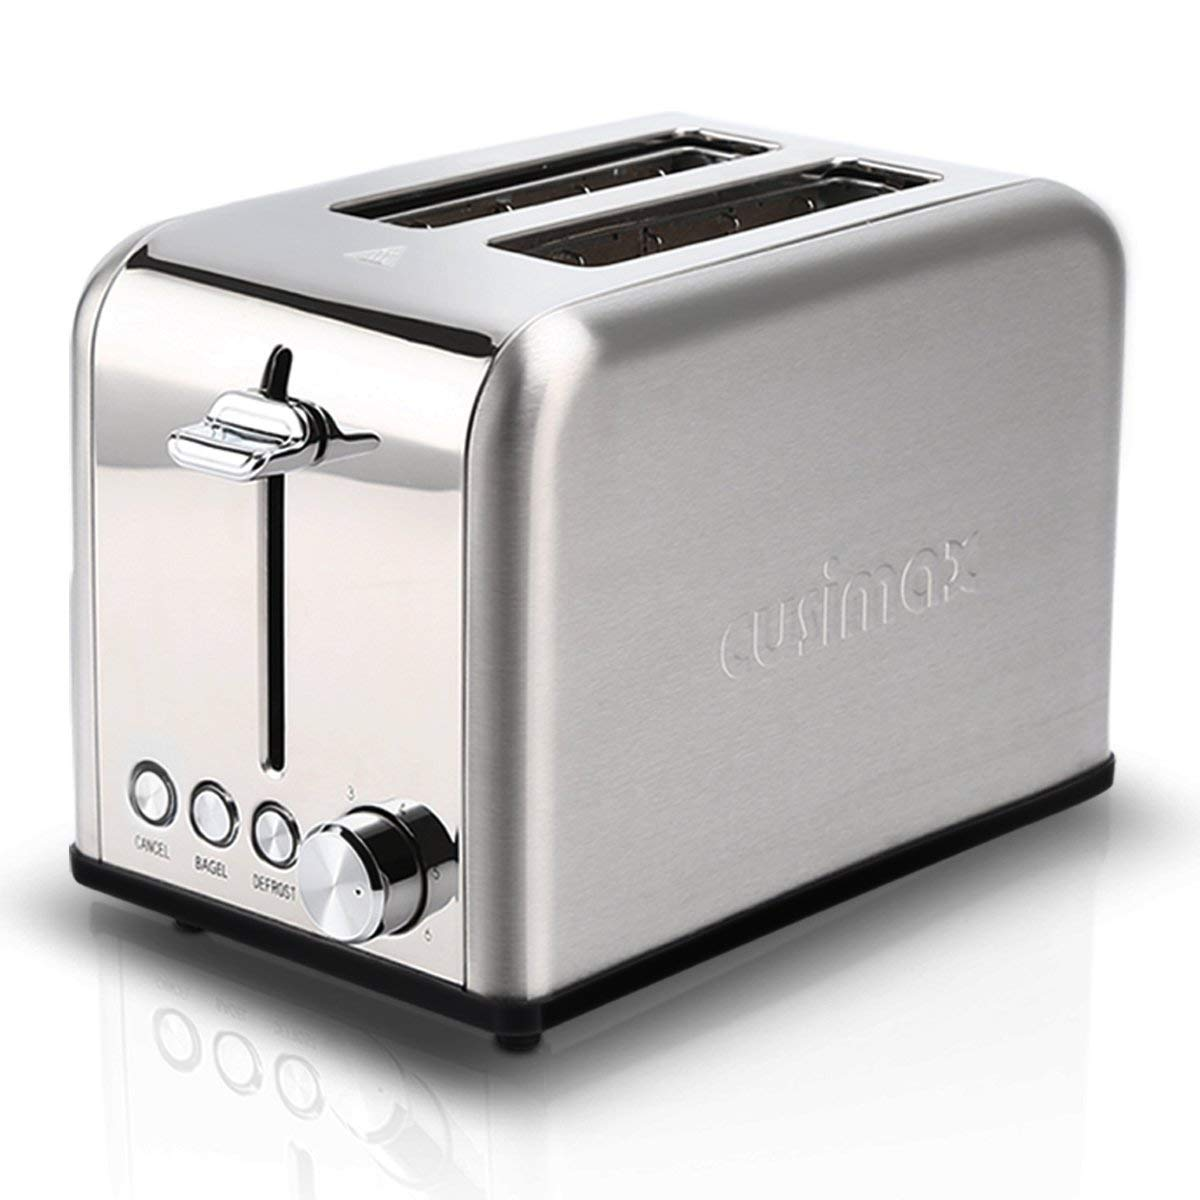 Cusimax 2-Slice Toaster 5 Shade Settings - Pop Up Extra Wide Slot Toaster - CMST-T85 - Stainless Steel CMST-1603